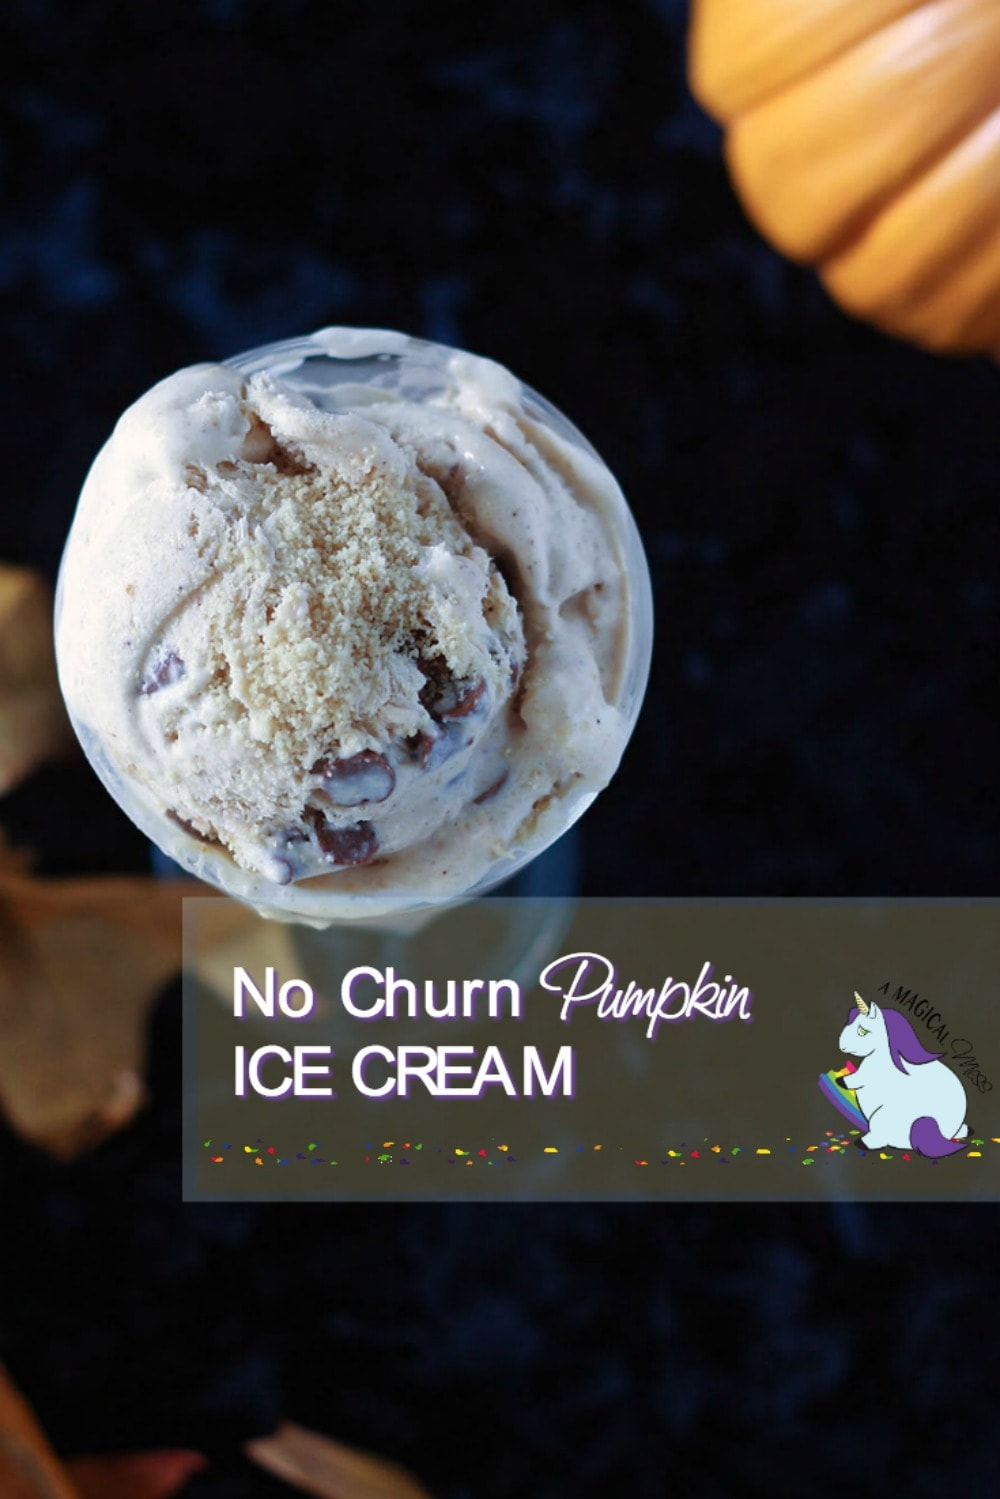 No churn pumpkin ice cream recipe with swirls of cinnamon chips and vanilla cookies